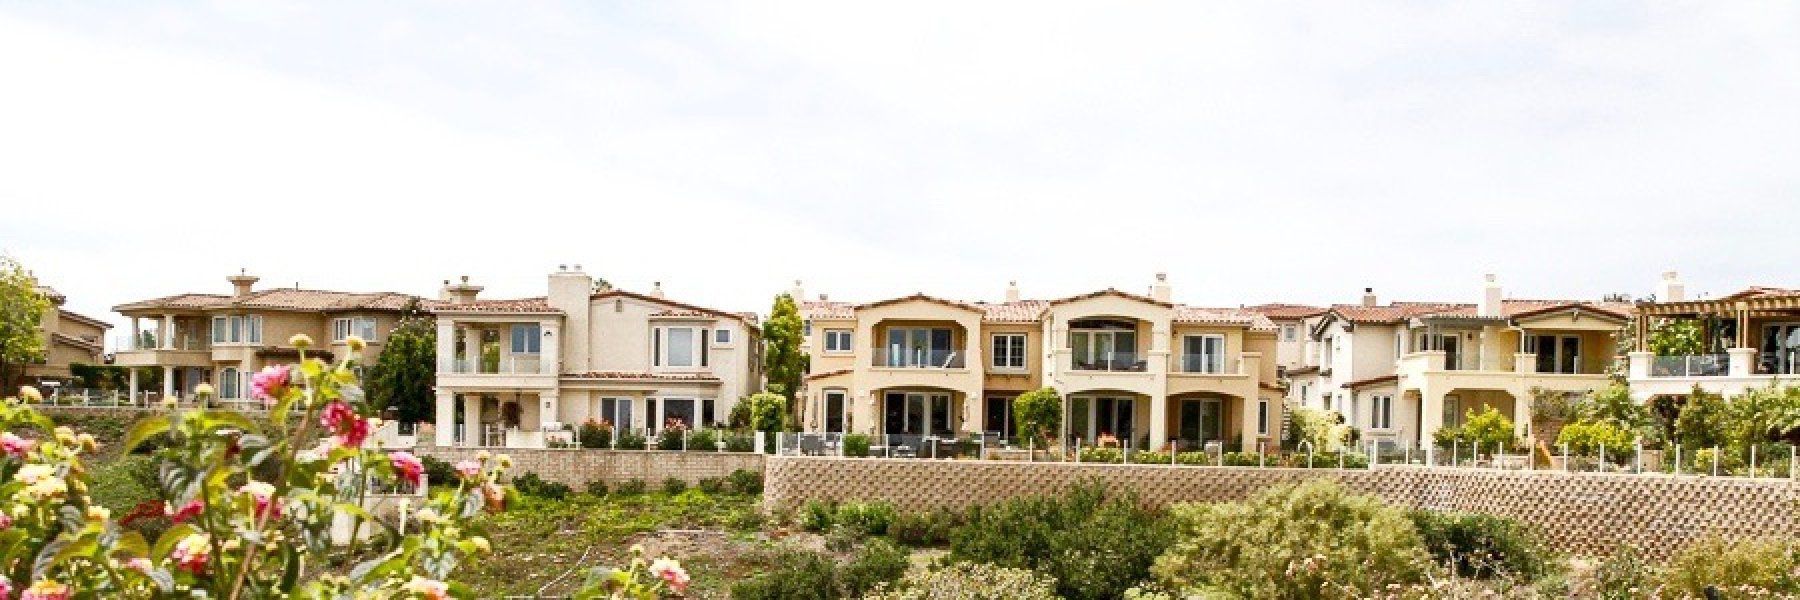 Emerald Cove is a community of homes in La Jolla California